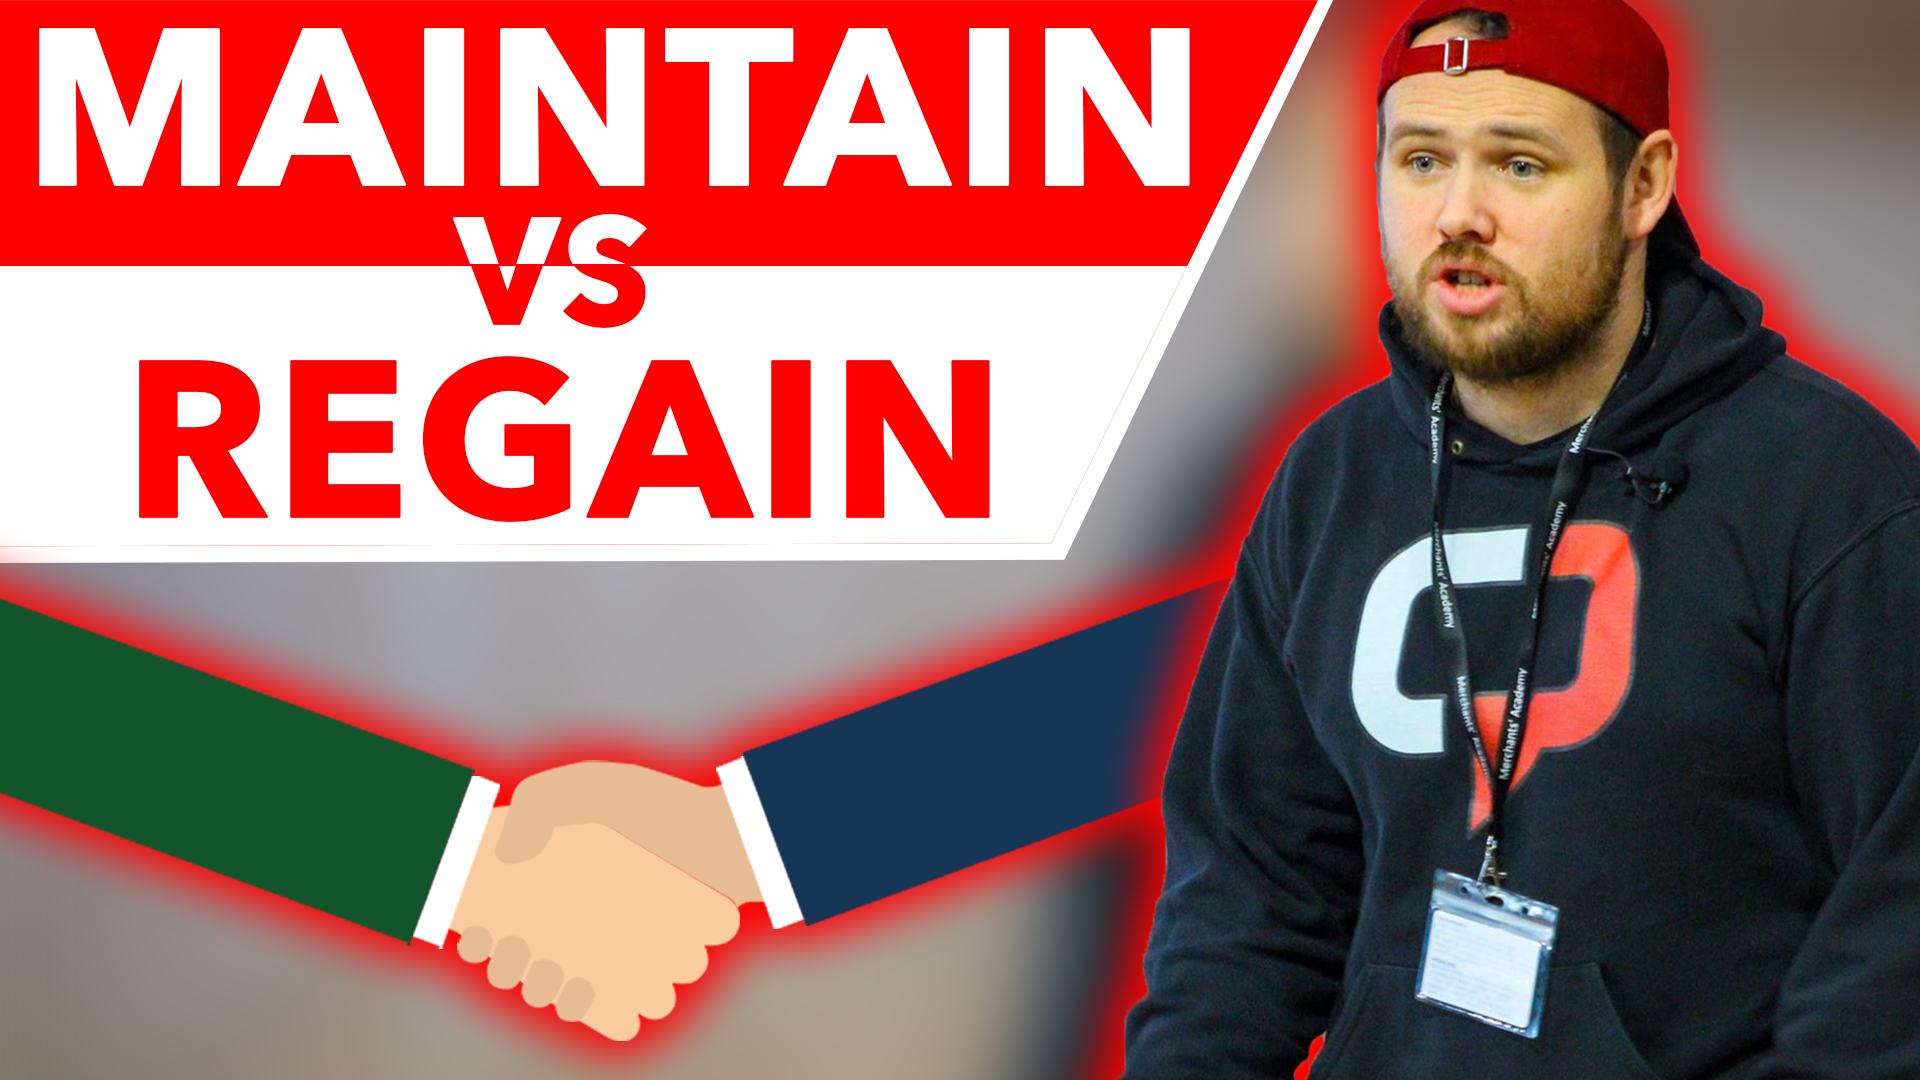 Maintain vs Regain Motivational Video – For Teenagers